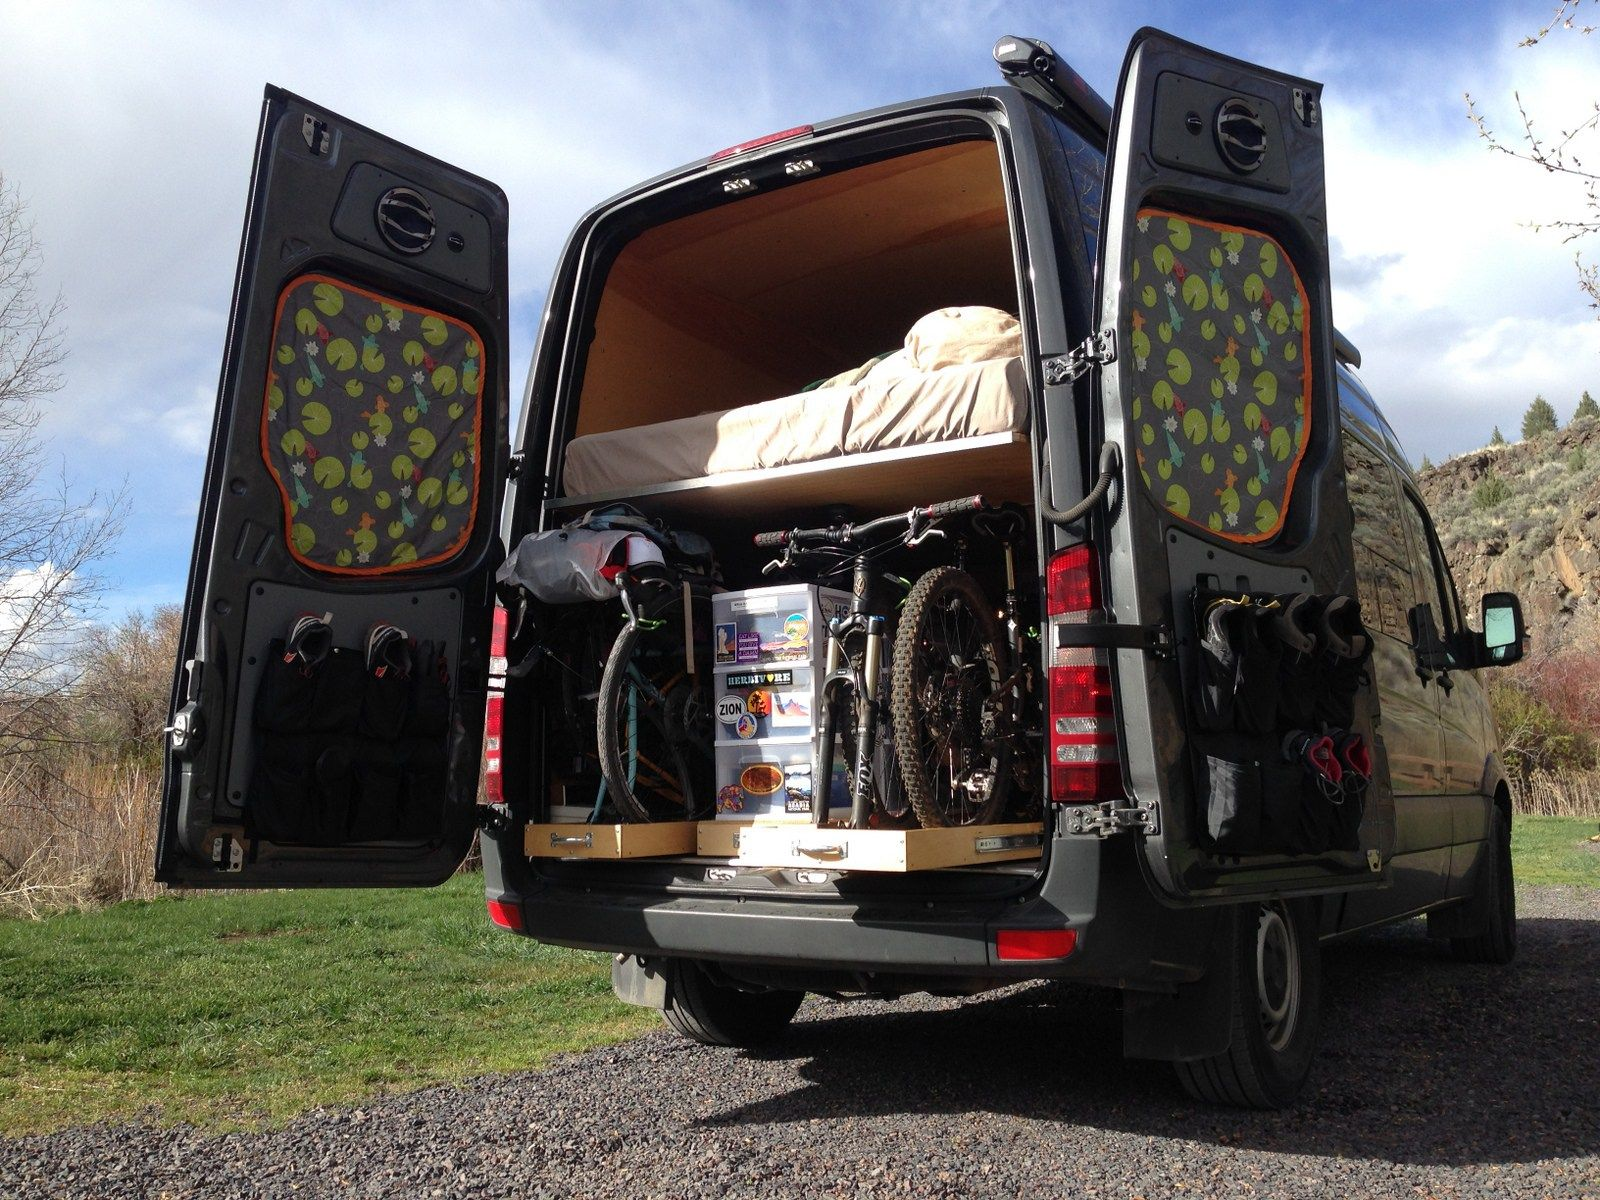 Sprinter van bike and gear garage. The drawers on the left